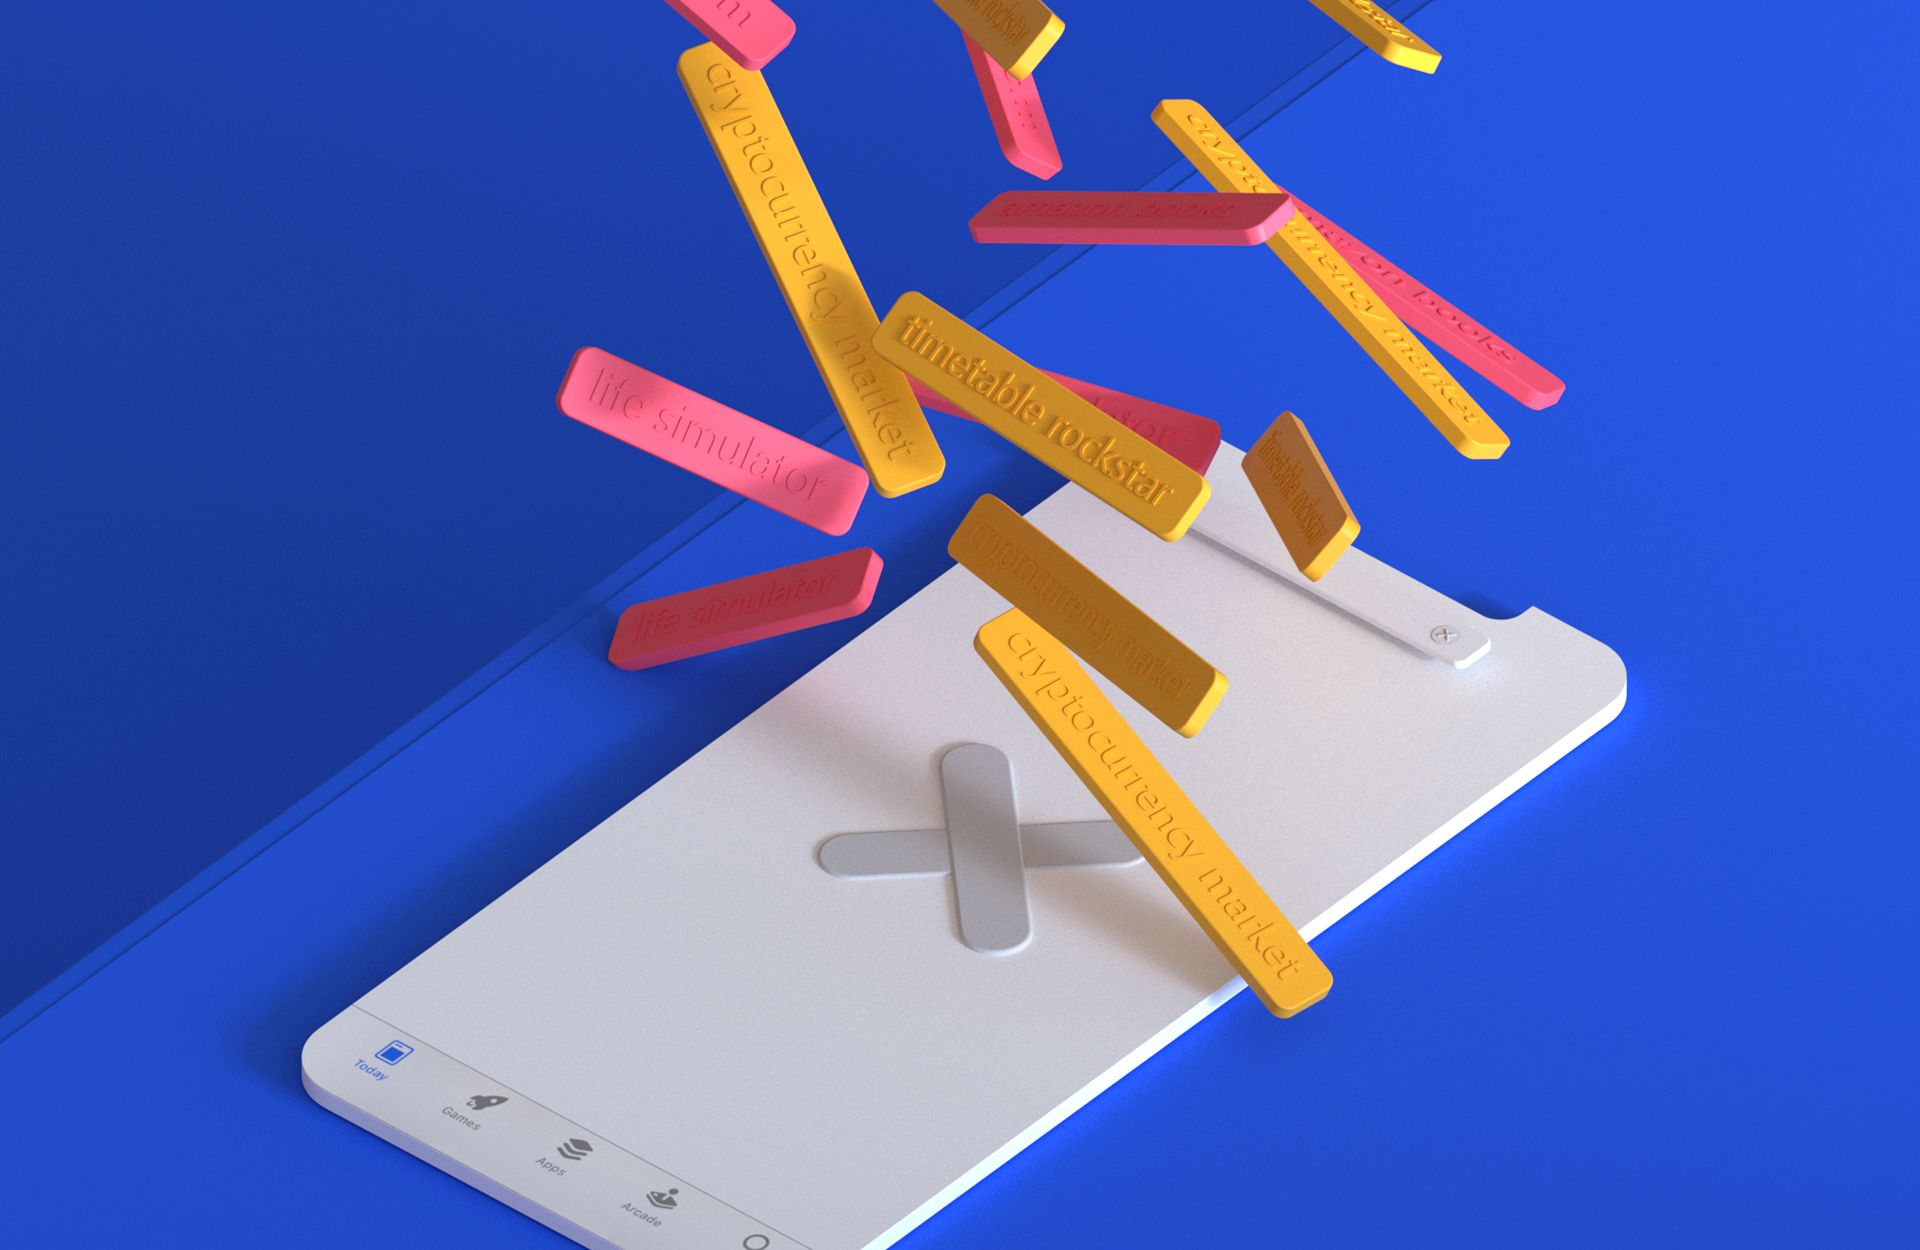 /the-july-tech-stories-that-dominated-our-mobile-newsfeeds-962o3x78 feature image